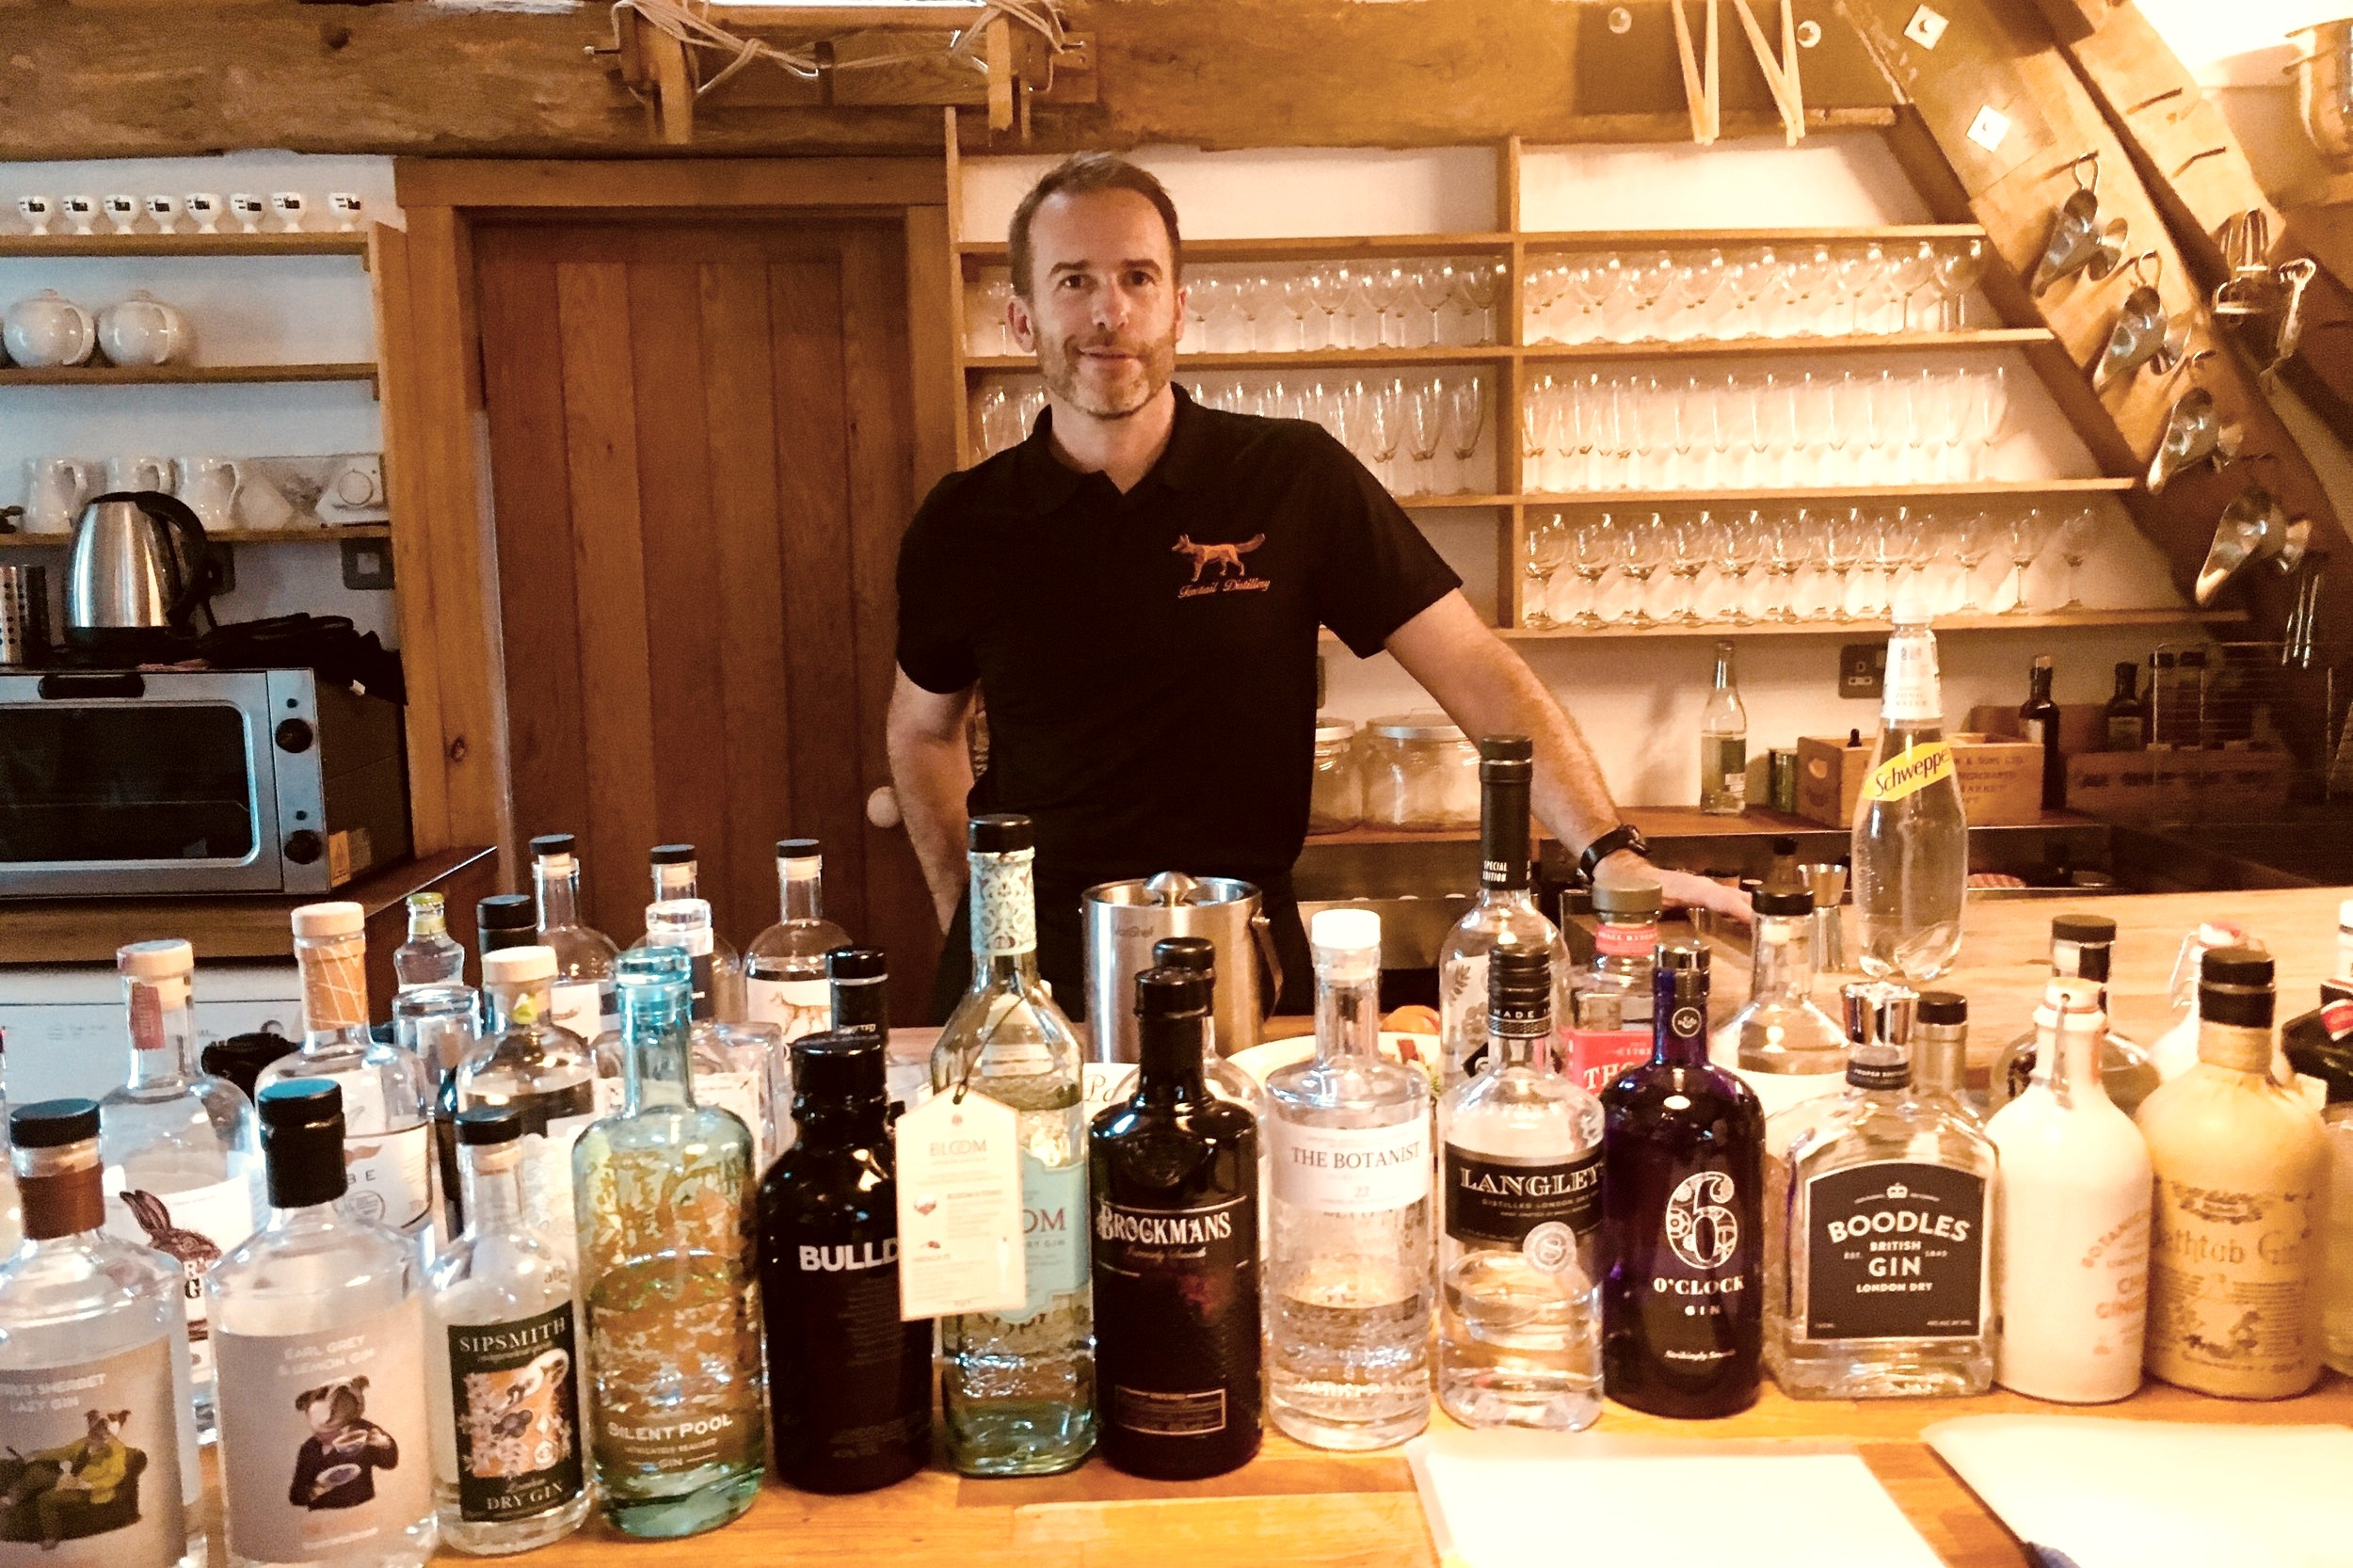 Private Gin Tasting experience with Foxtail Gin - learn about the medicinal origins of Gin & tasting approach used to describe the 'nose', 'intensity' and flavour of each, then blend your own gin.